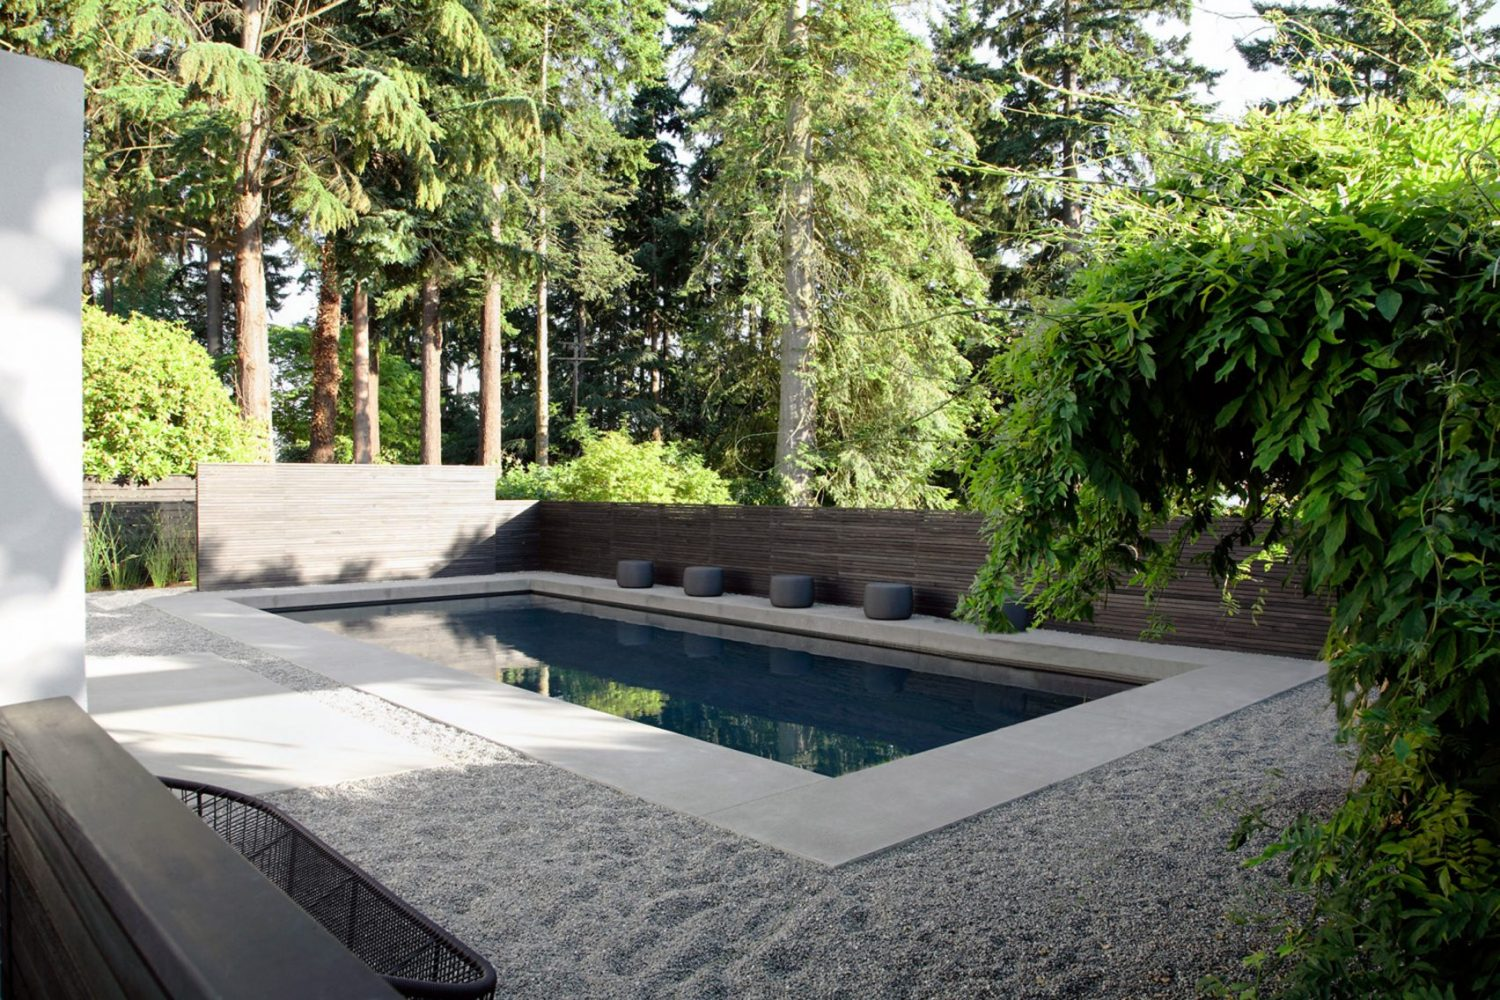 Modern Oasis by SkB Architects Modern Oasis by SkB Architects Features Gallery-Like Aesthetic Modern Oasis by SkB Architects Features Gallery Like Aesthetic 7